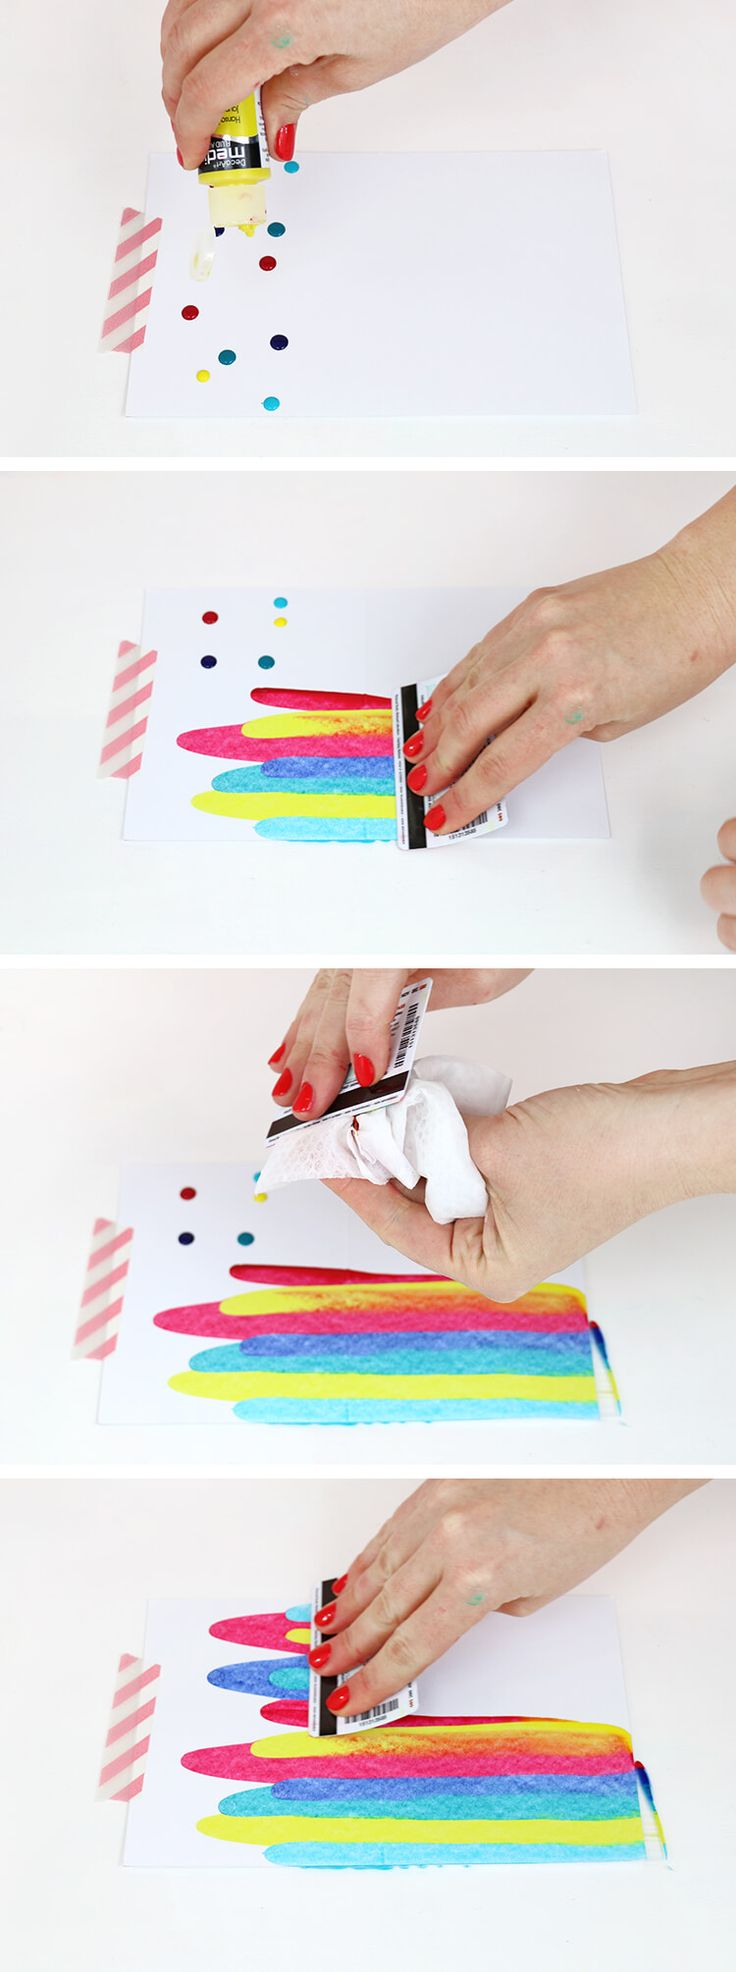 DIY art project idea - how to make paint scrape note cards